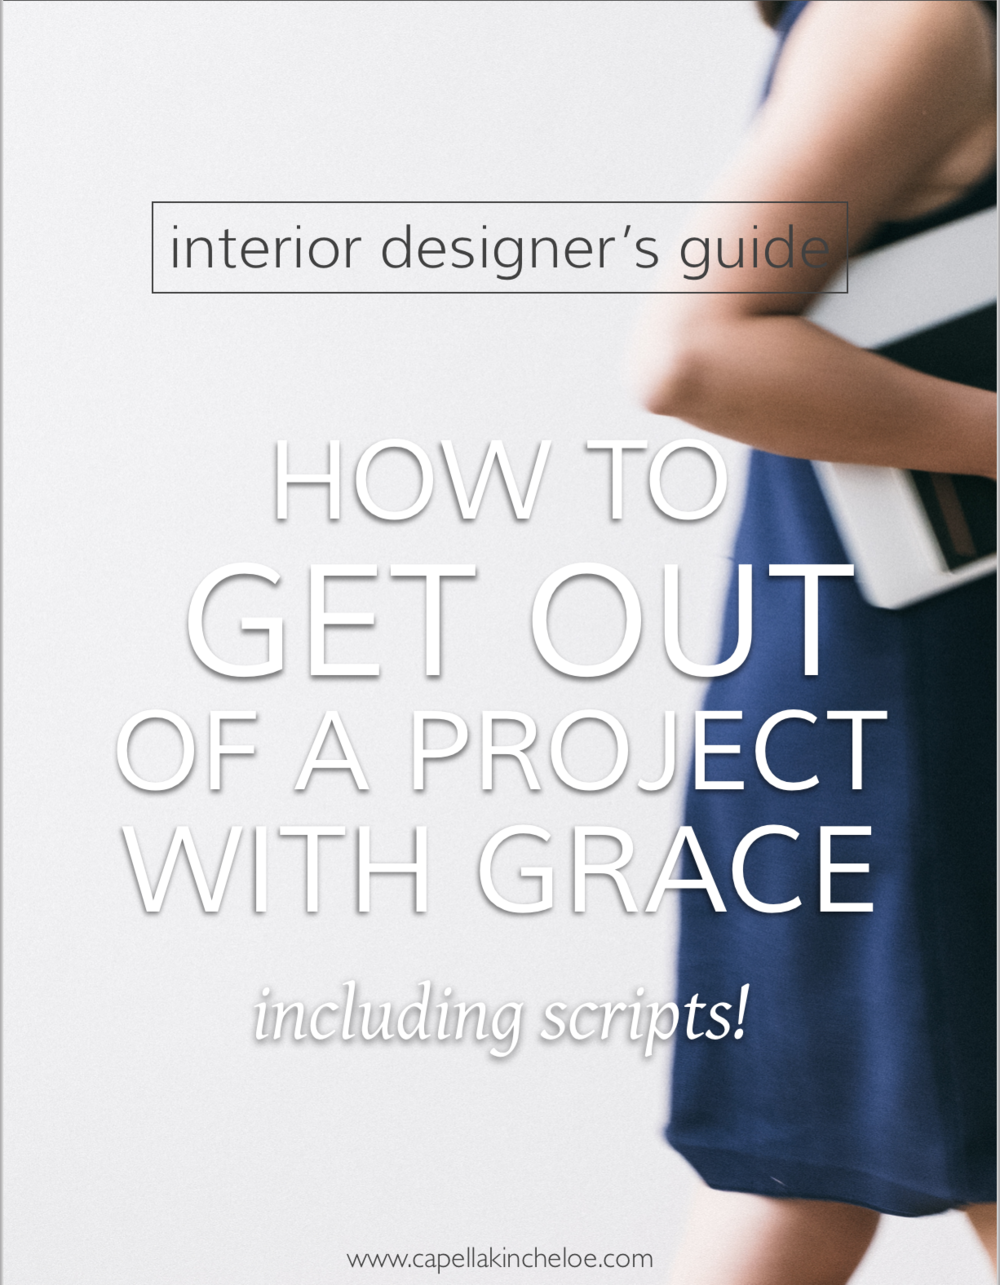 Sometimes you need to get out of a project.  In this article I tell you how to do so with grace and poise.